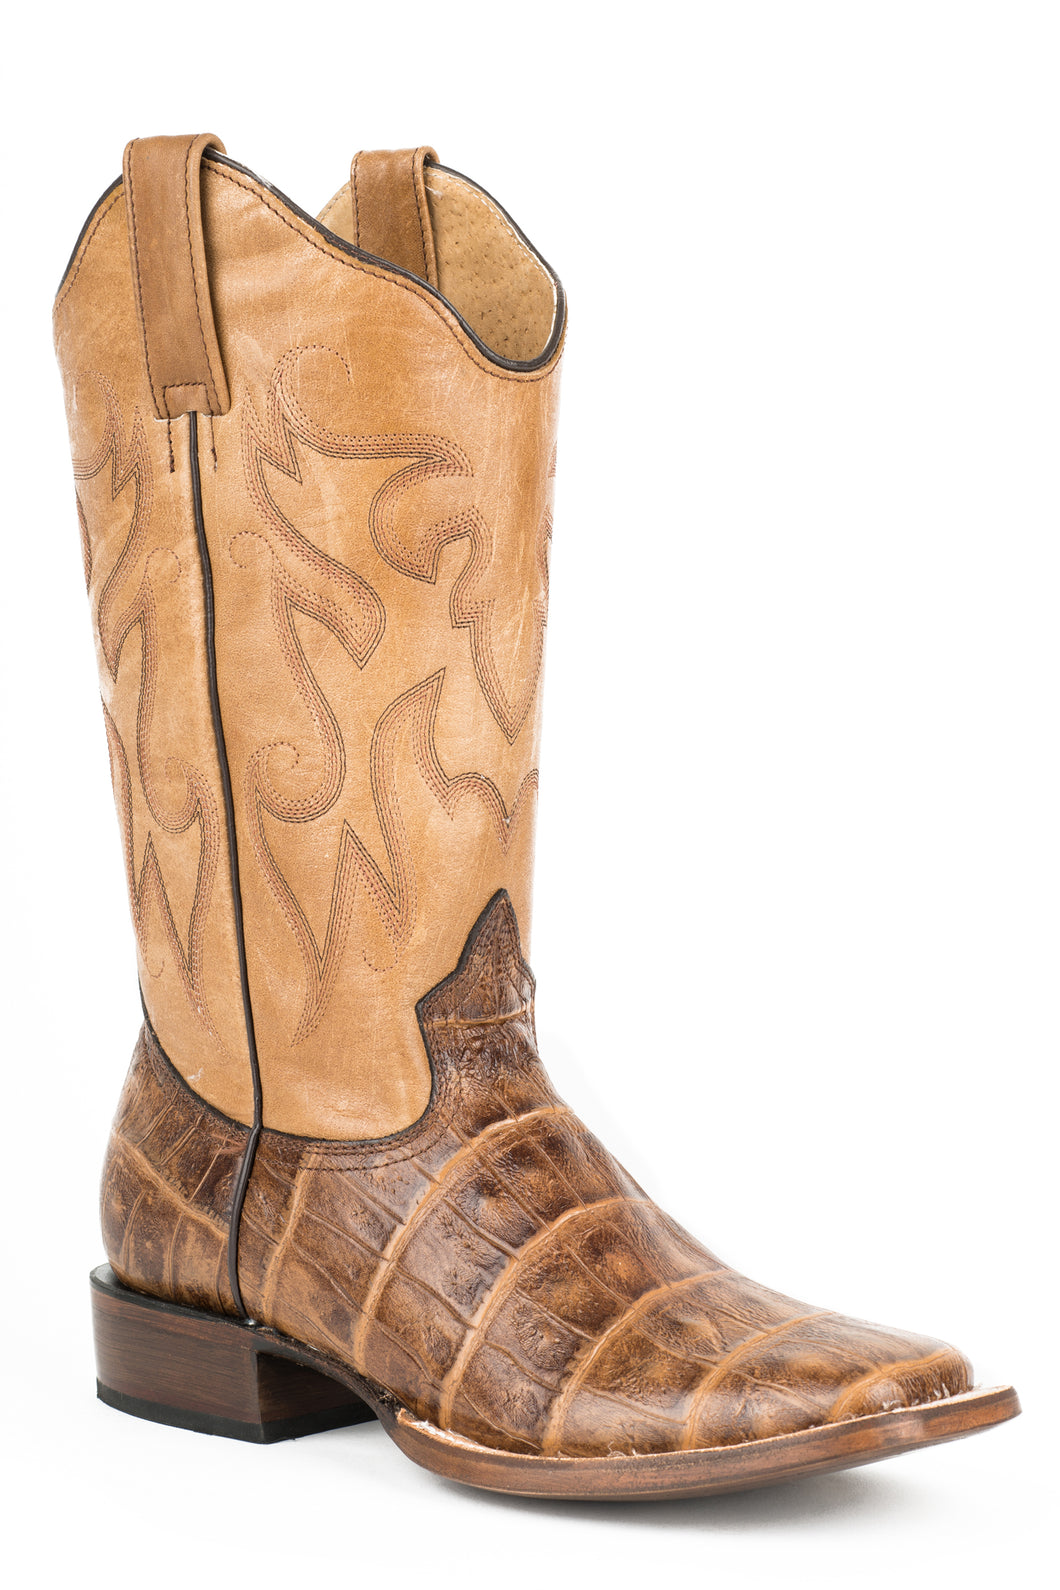 Gatorette Boot Ladies Boot Faux Lt.brown Croclt.brown Shaft